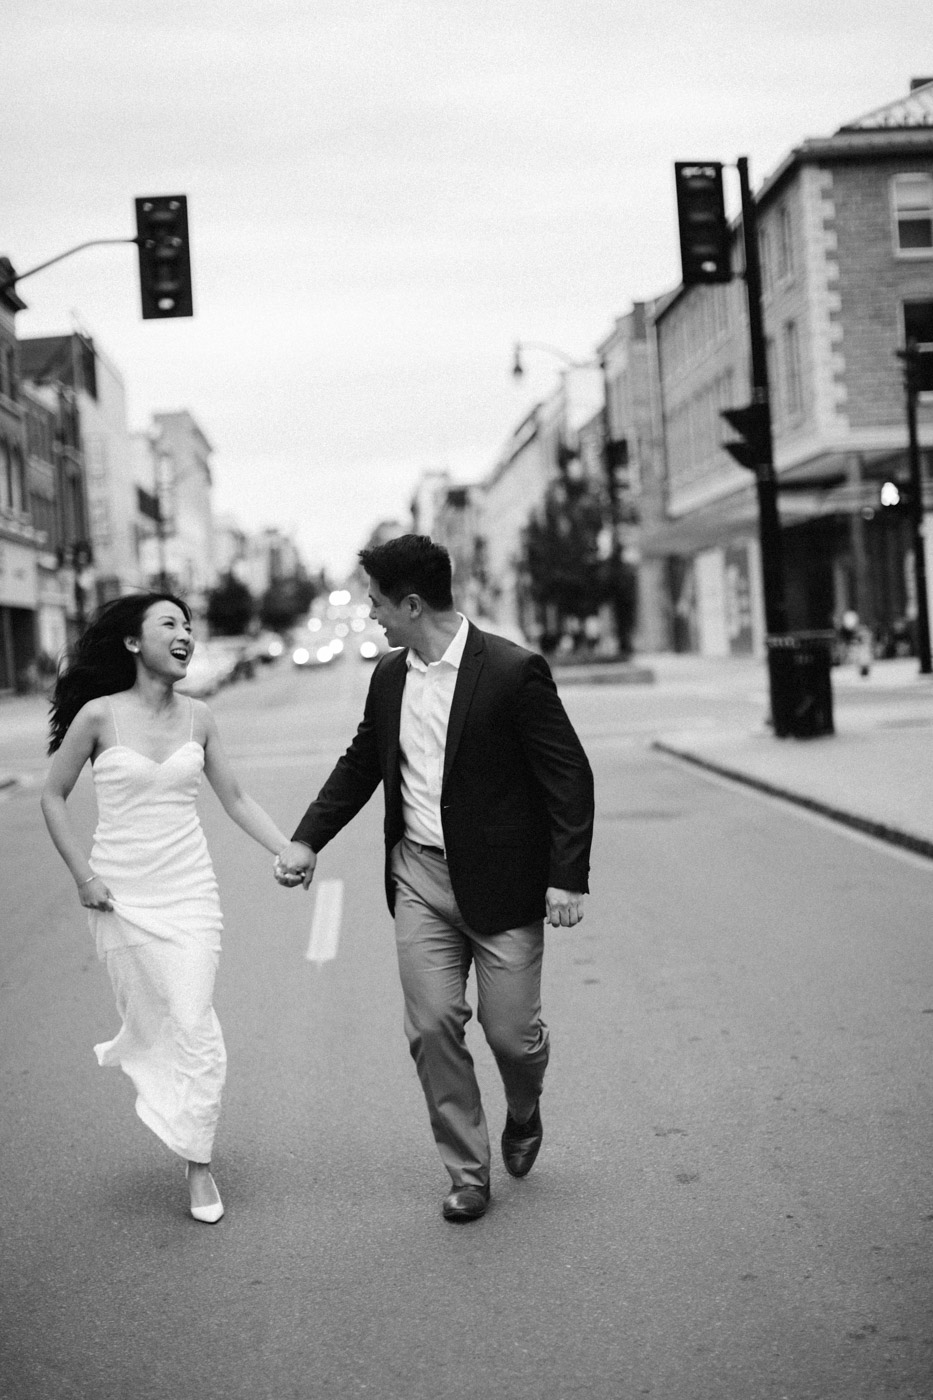 toronto_wedding_photographer_fine_art_documentary 2017-111.jpg